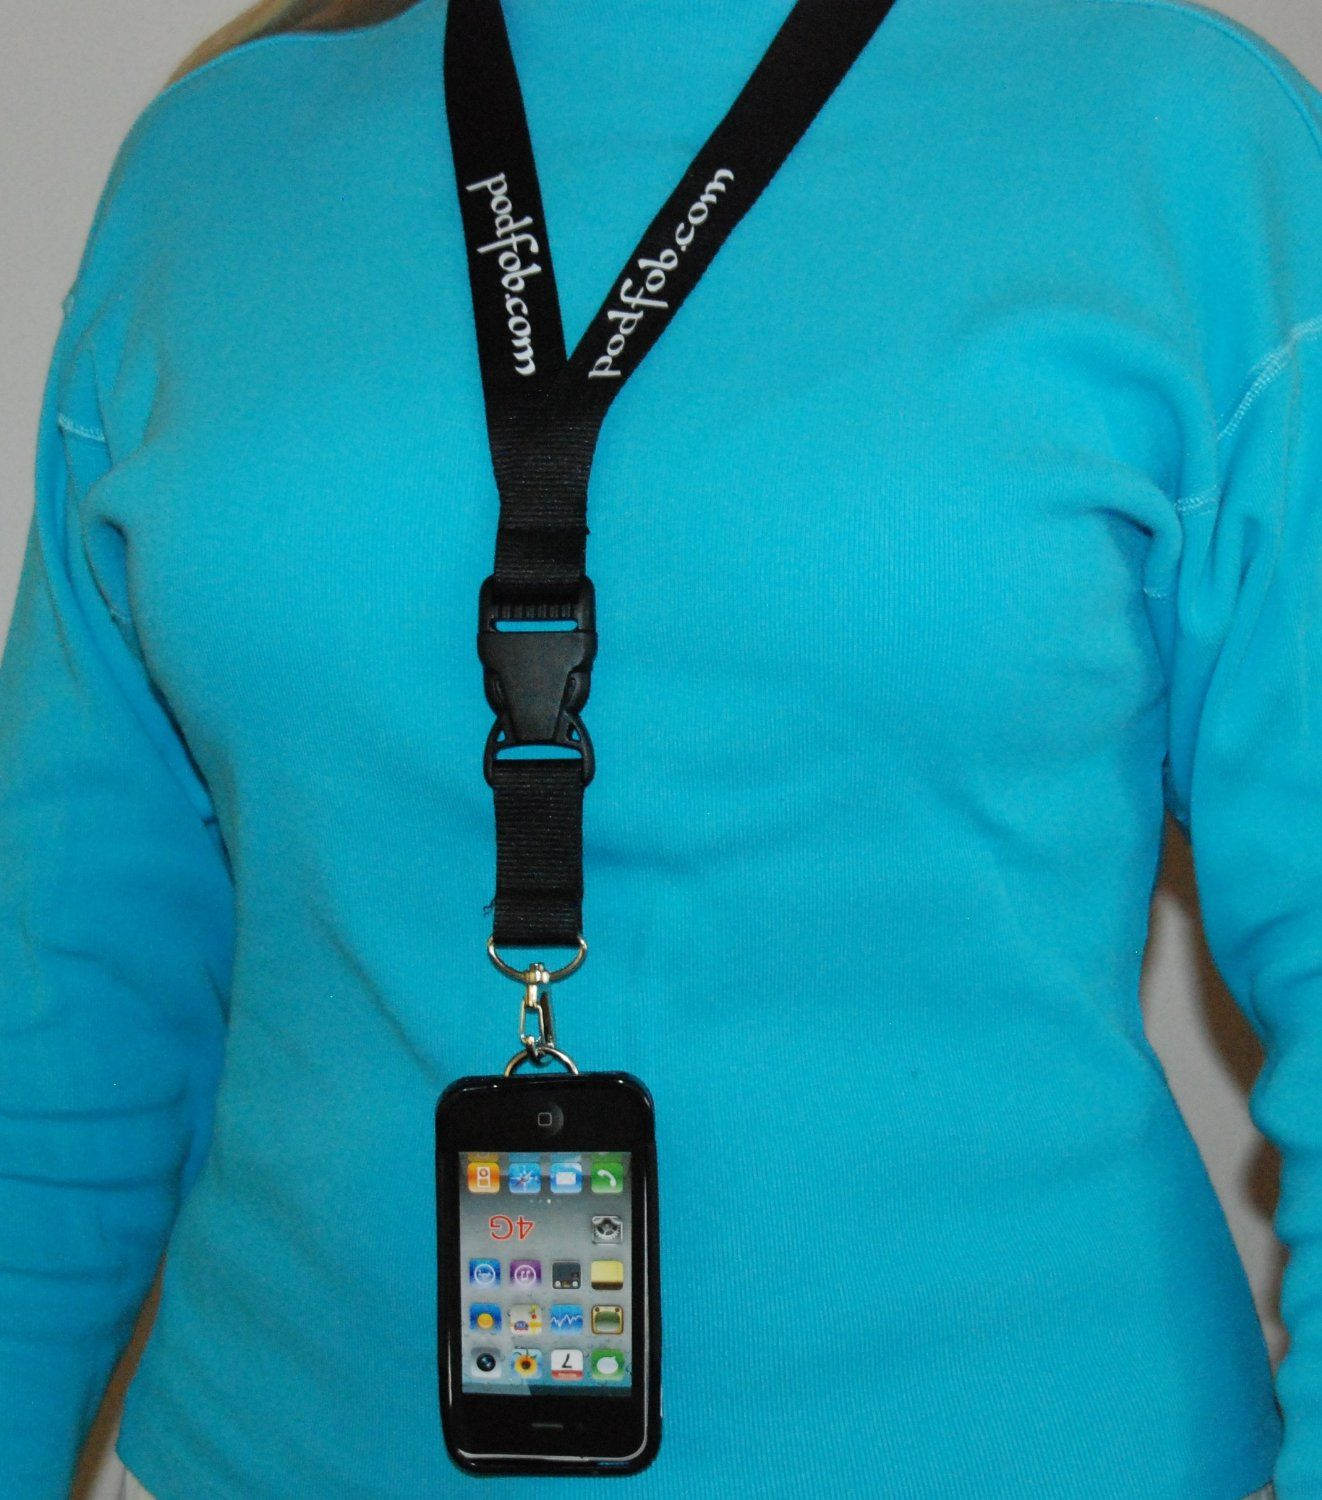 buy popular 005df 58109 $30 Amazon.com: iPhone 5 Nonslip protective case and neck Lanyard ...